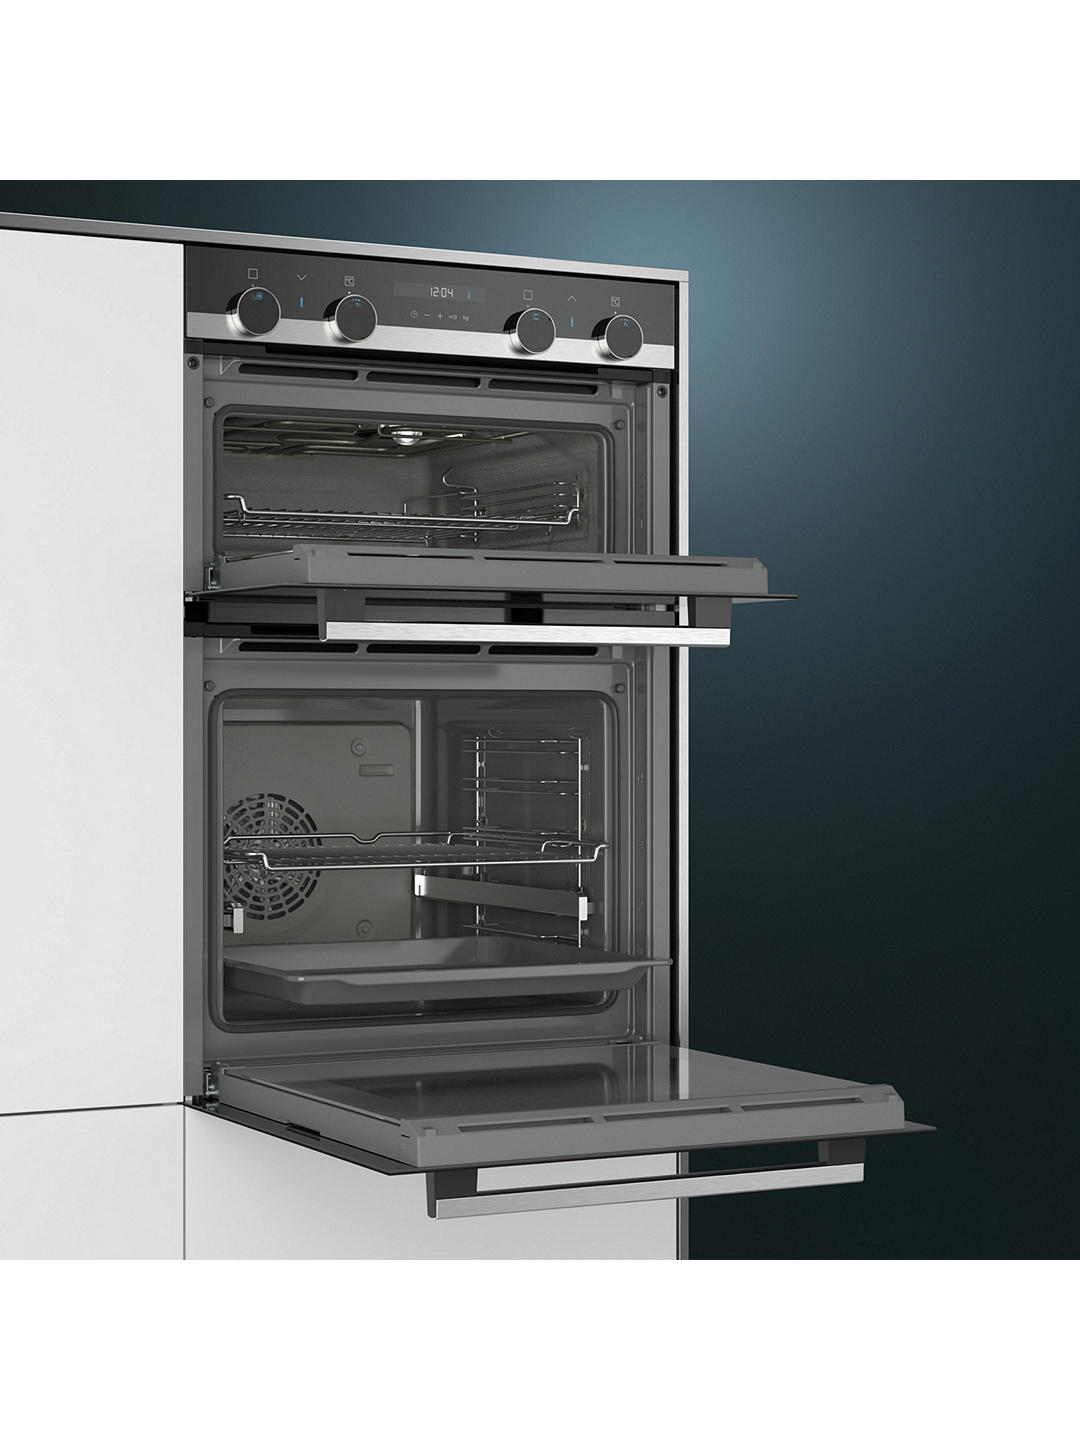 Buy Siemens MB535A0S0B Built-In Double Oven, Black Online at johnlewis.com